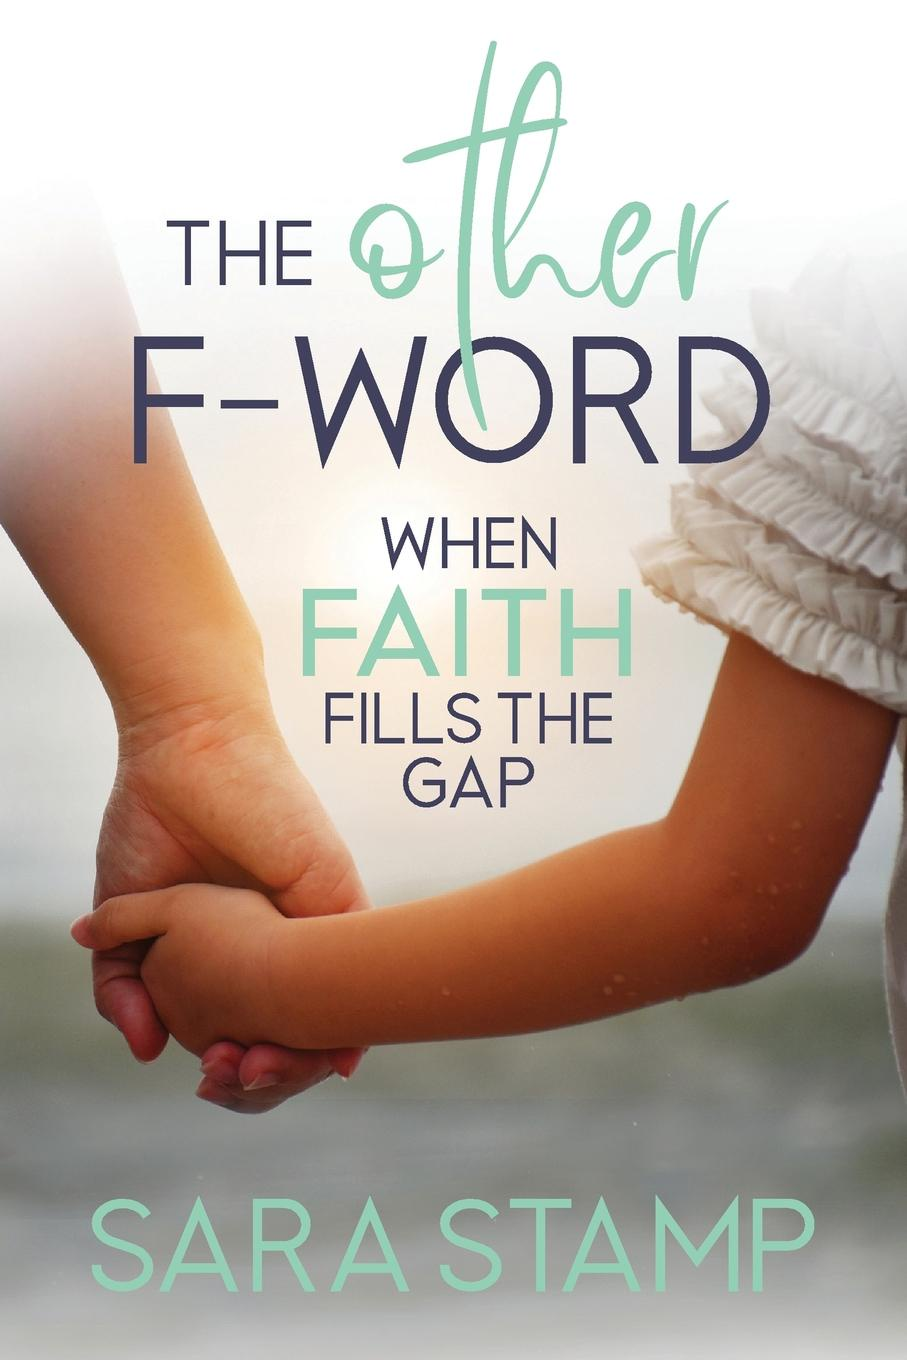 Фото - Sara Stamp The Other F Word. When Faith Fills the Gap anthony marsh the groom s secret handbook how not to screw up the biggest day of her life